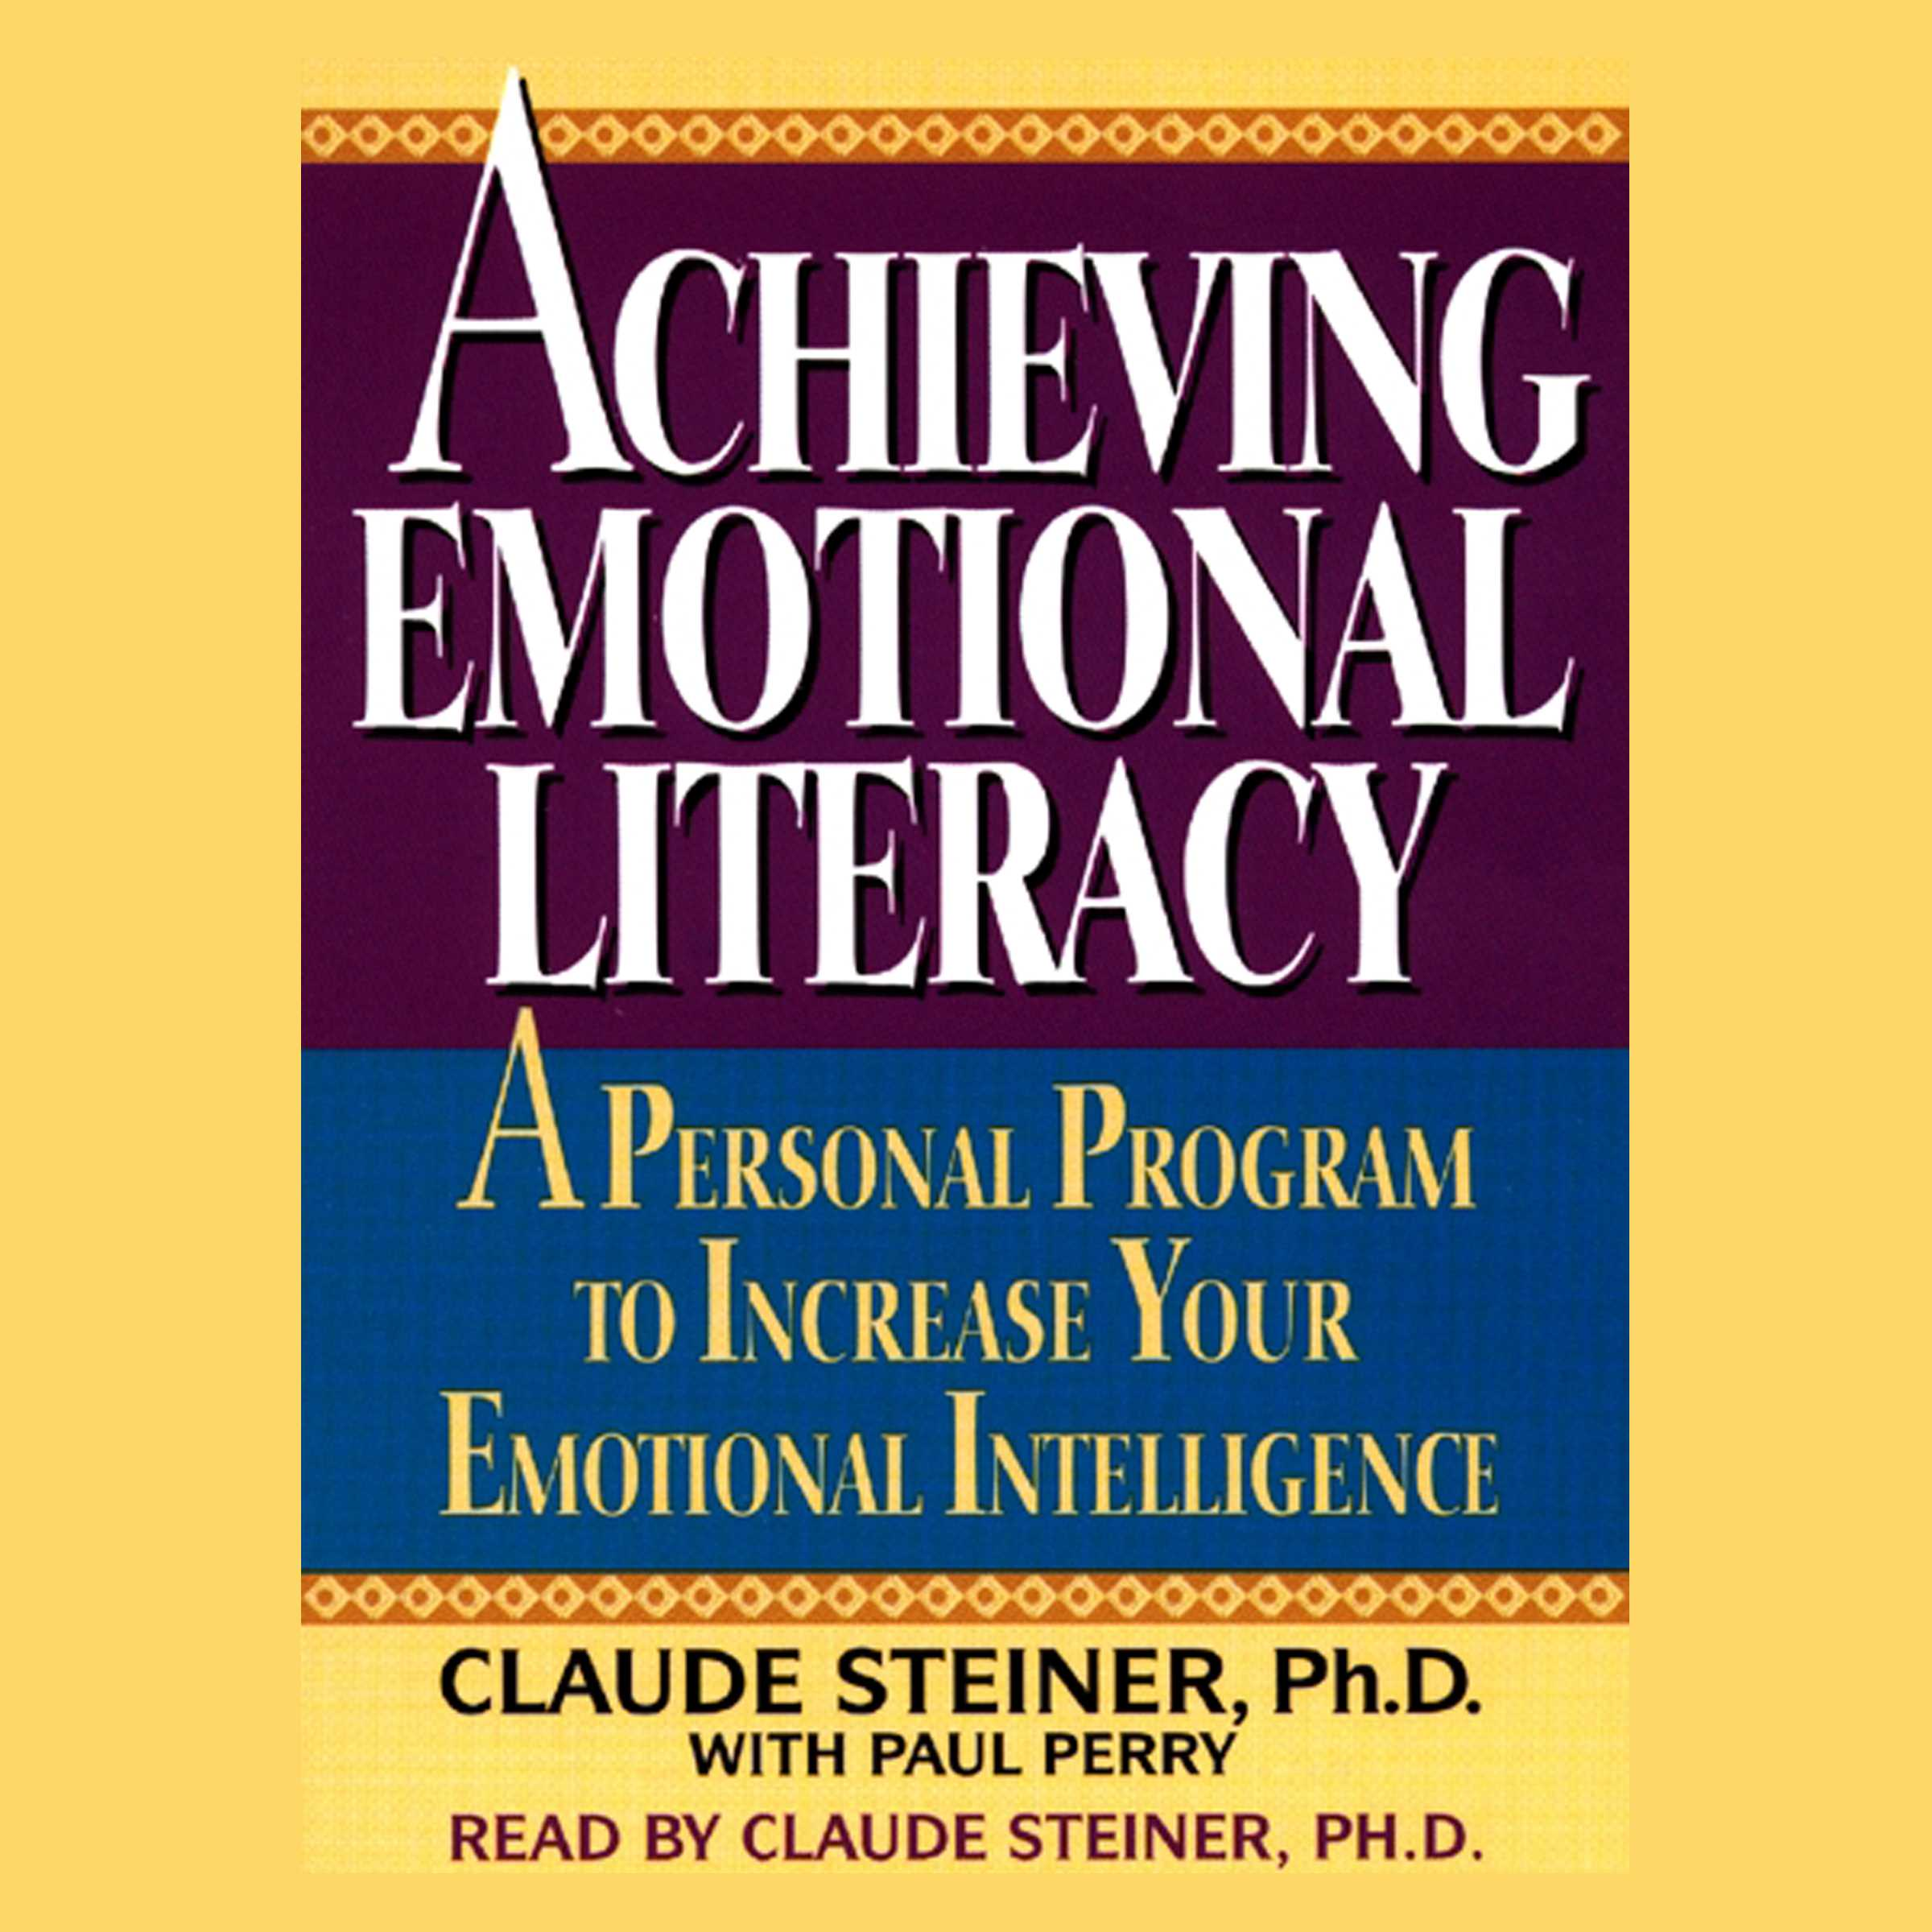 Achieving-emotional-literacy-9780743540902_hr